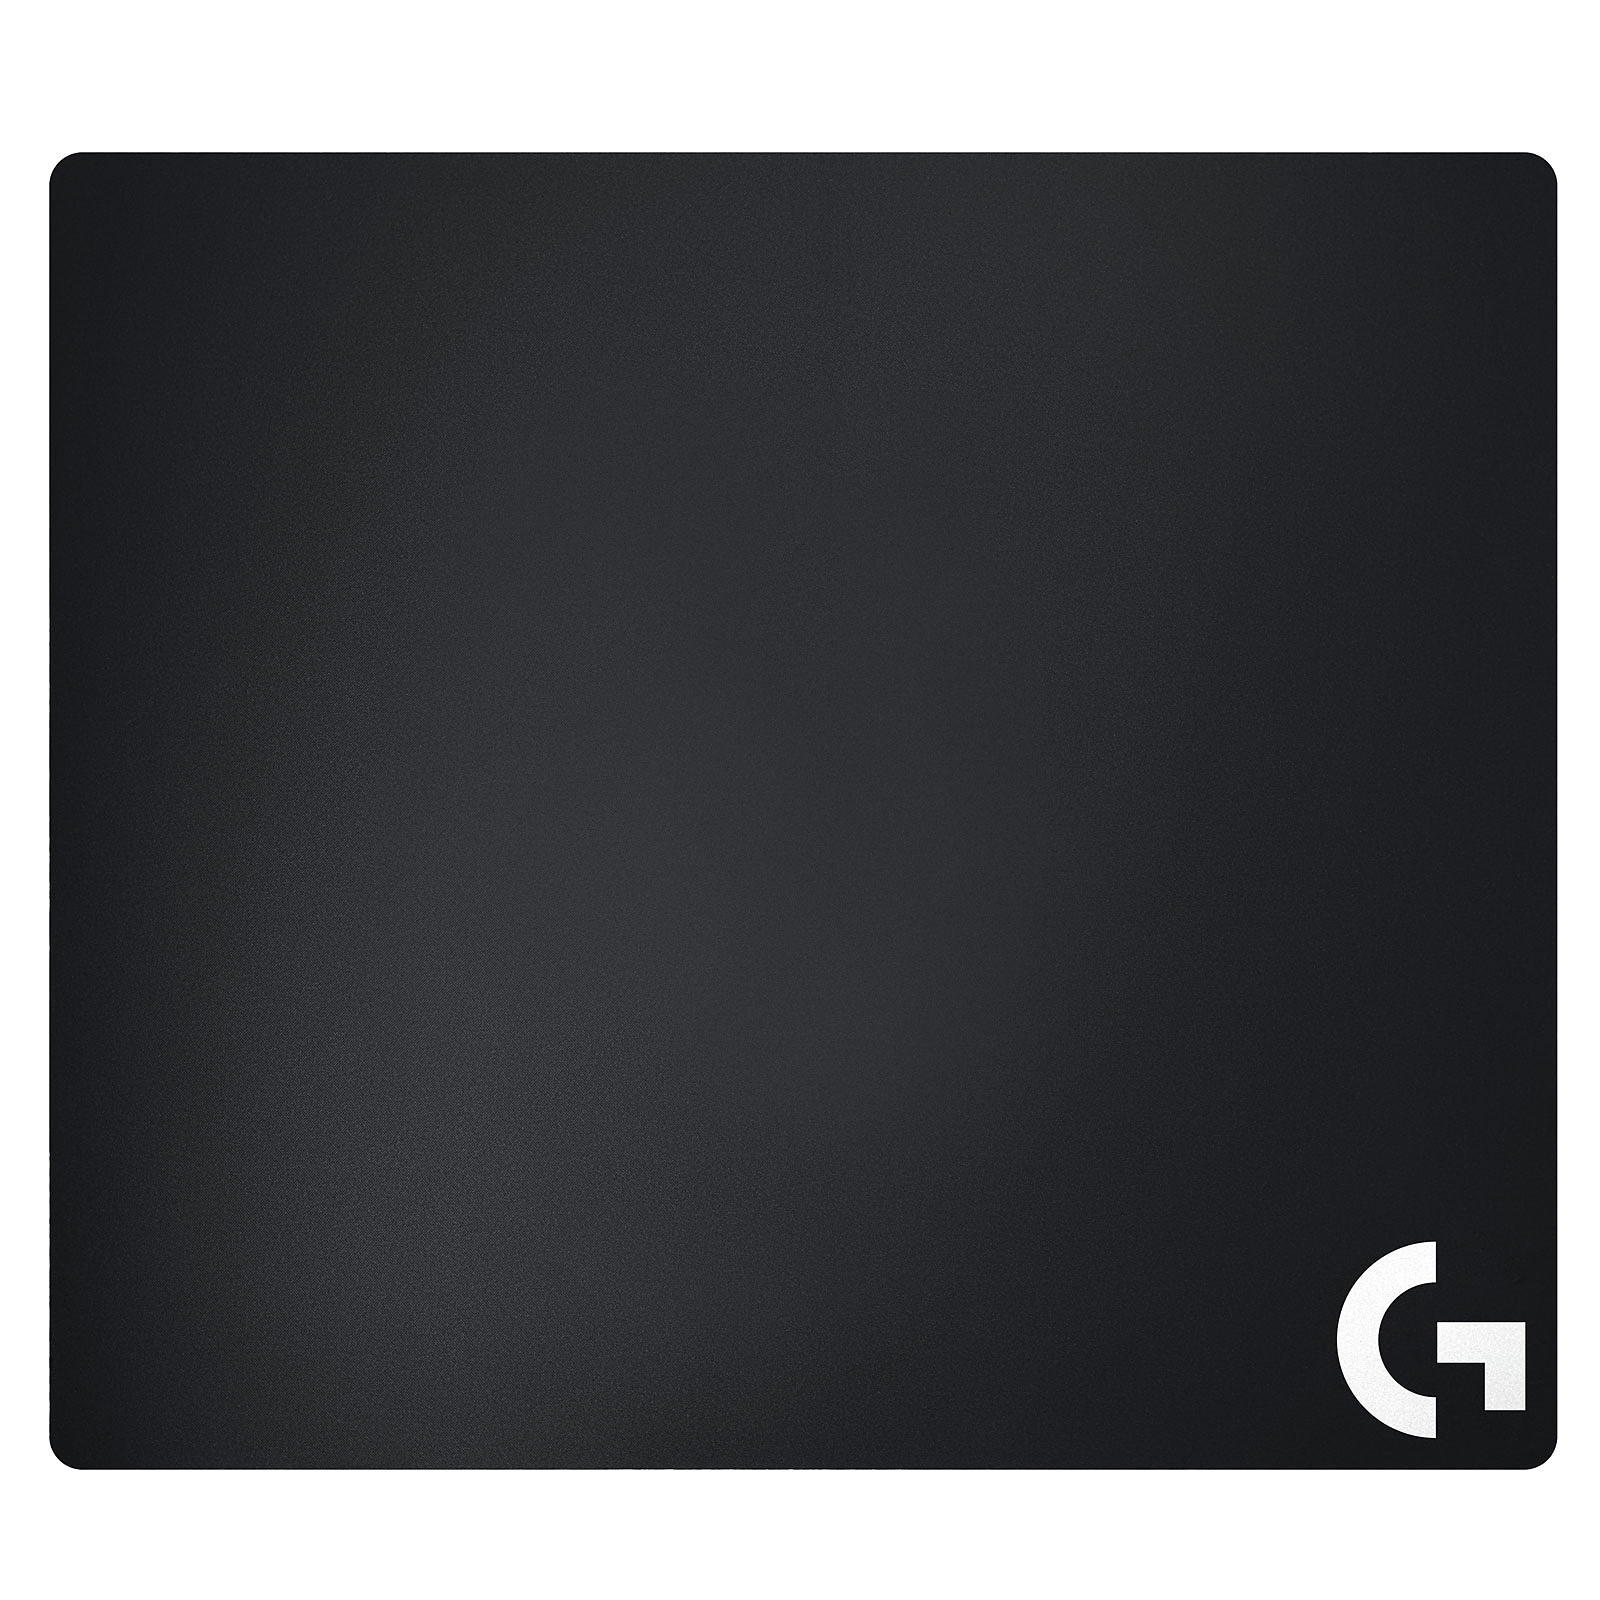 Logitech G640 Cloth Gaming Mouse Pad